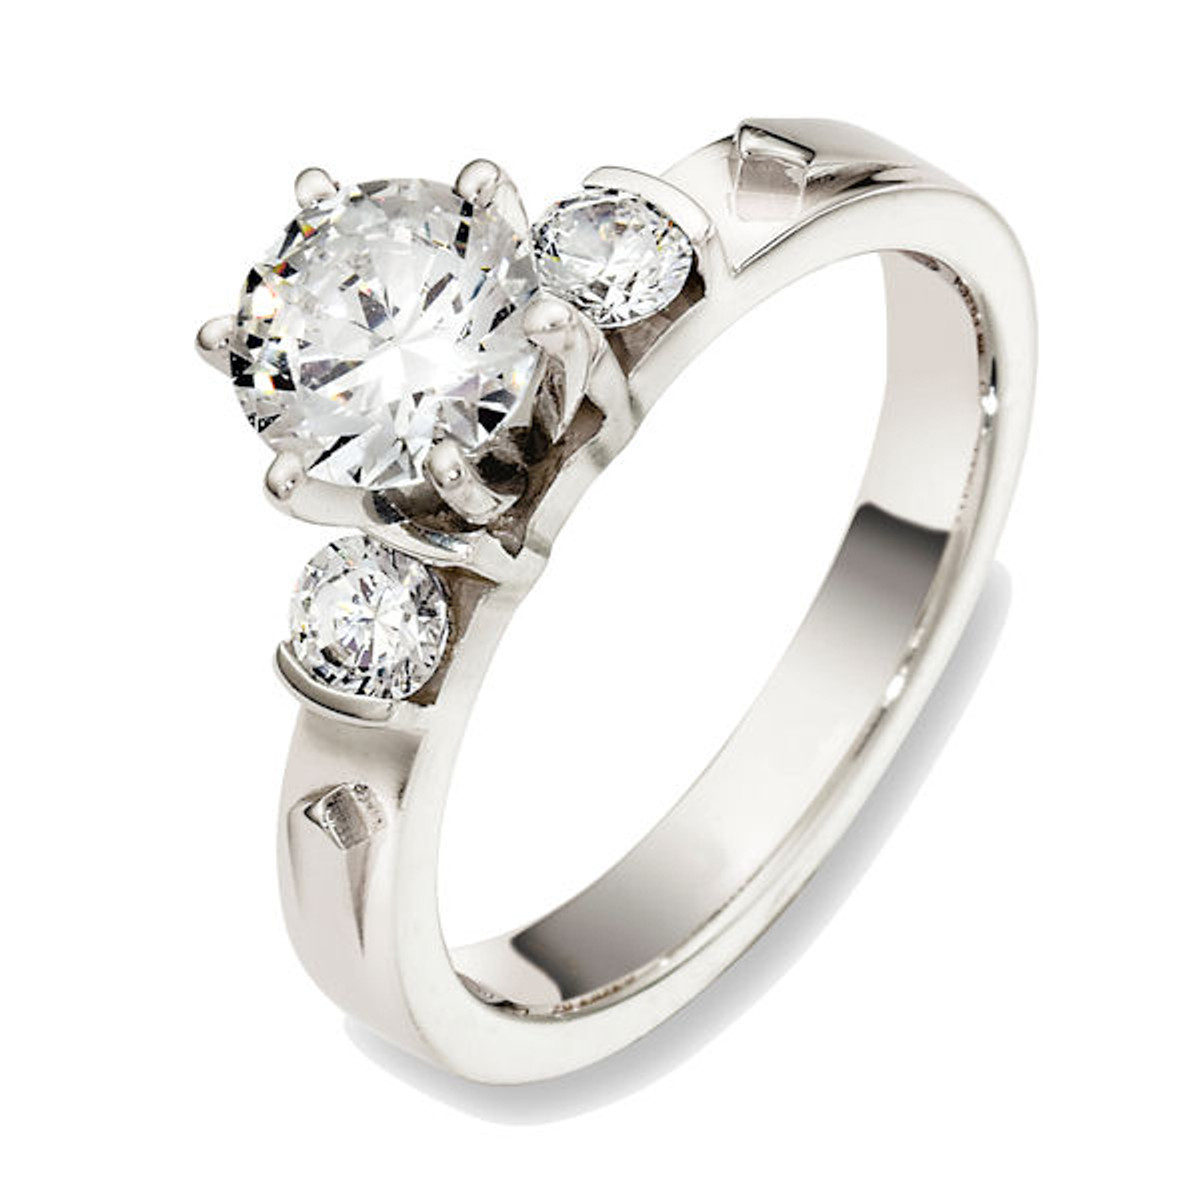 18Kt White Gold Three-Stone Diamond Engagement Ring